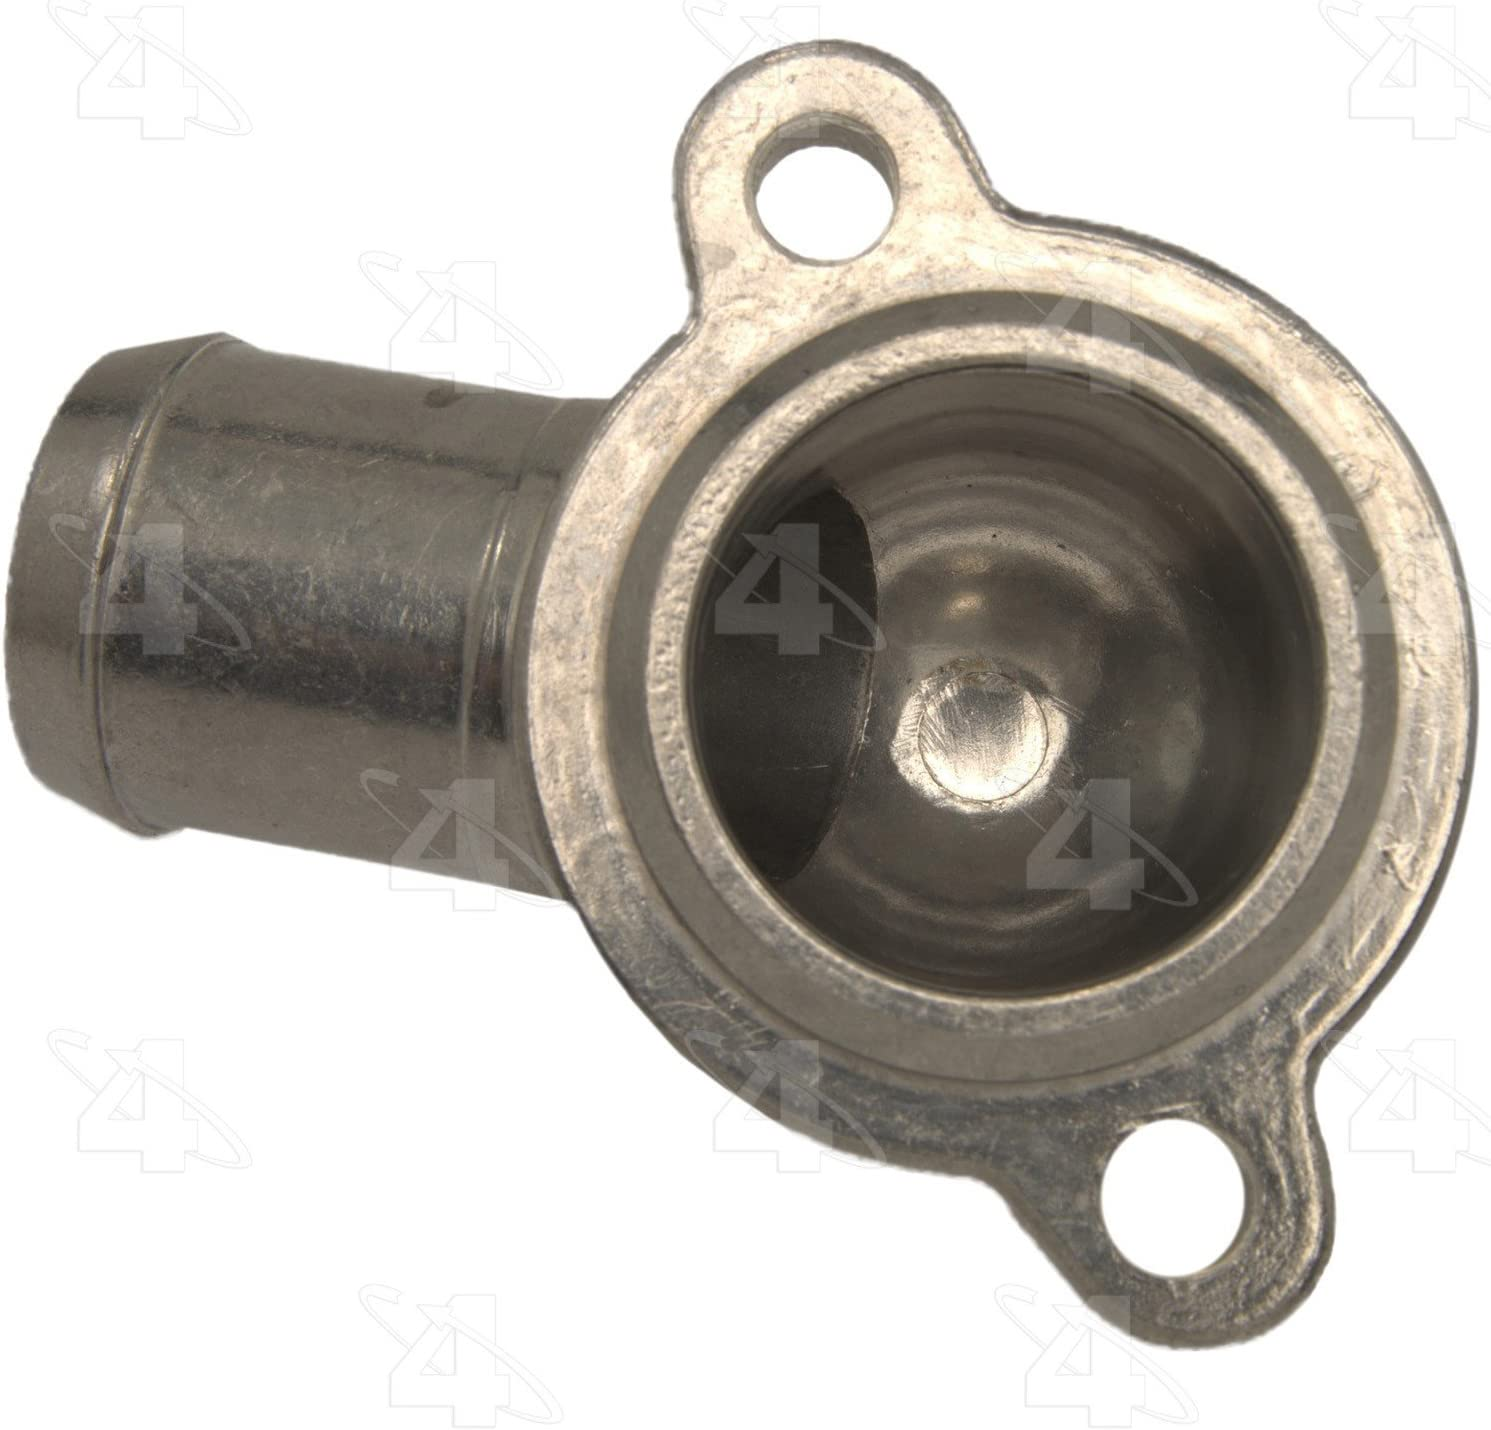 Four Seasons 85090 Engine Outlet Coolant Water Spring new work Fees free!! one after another